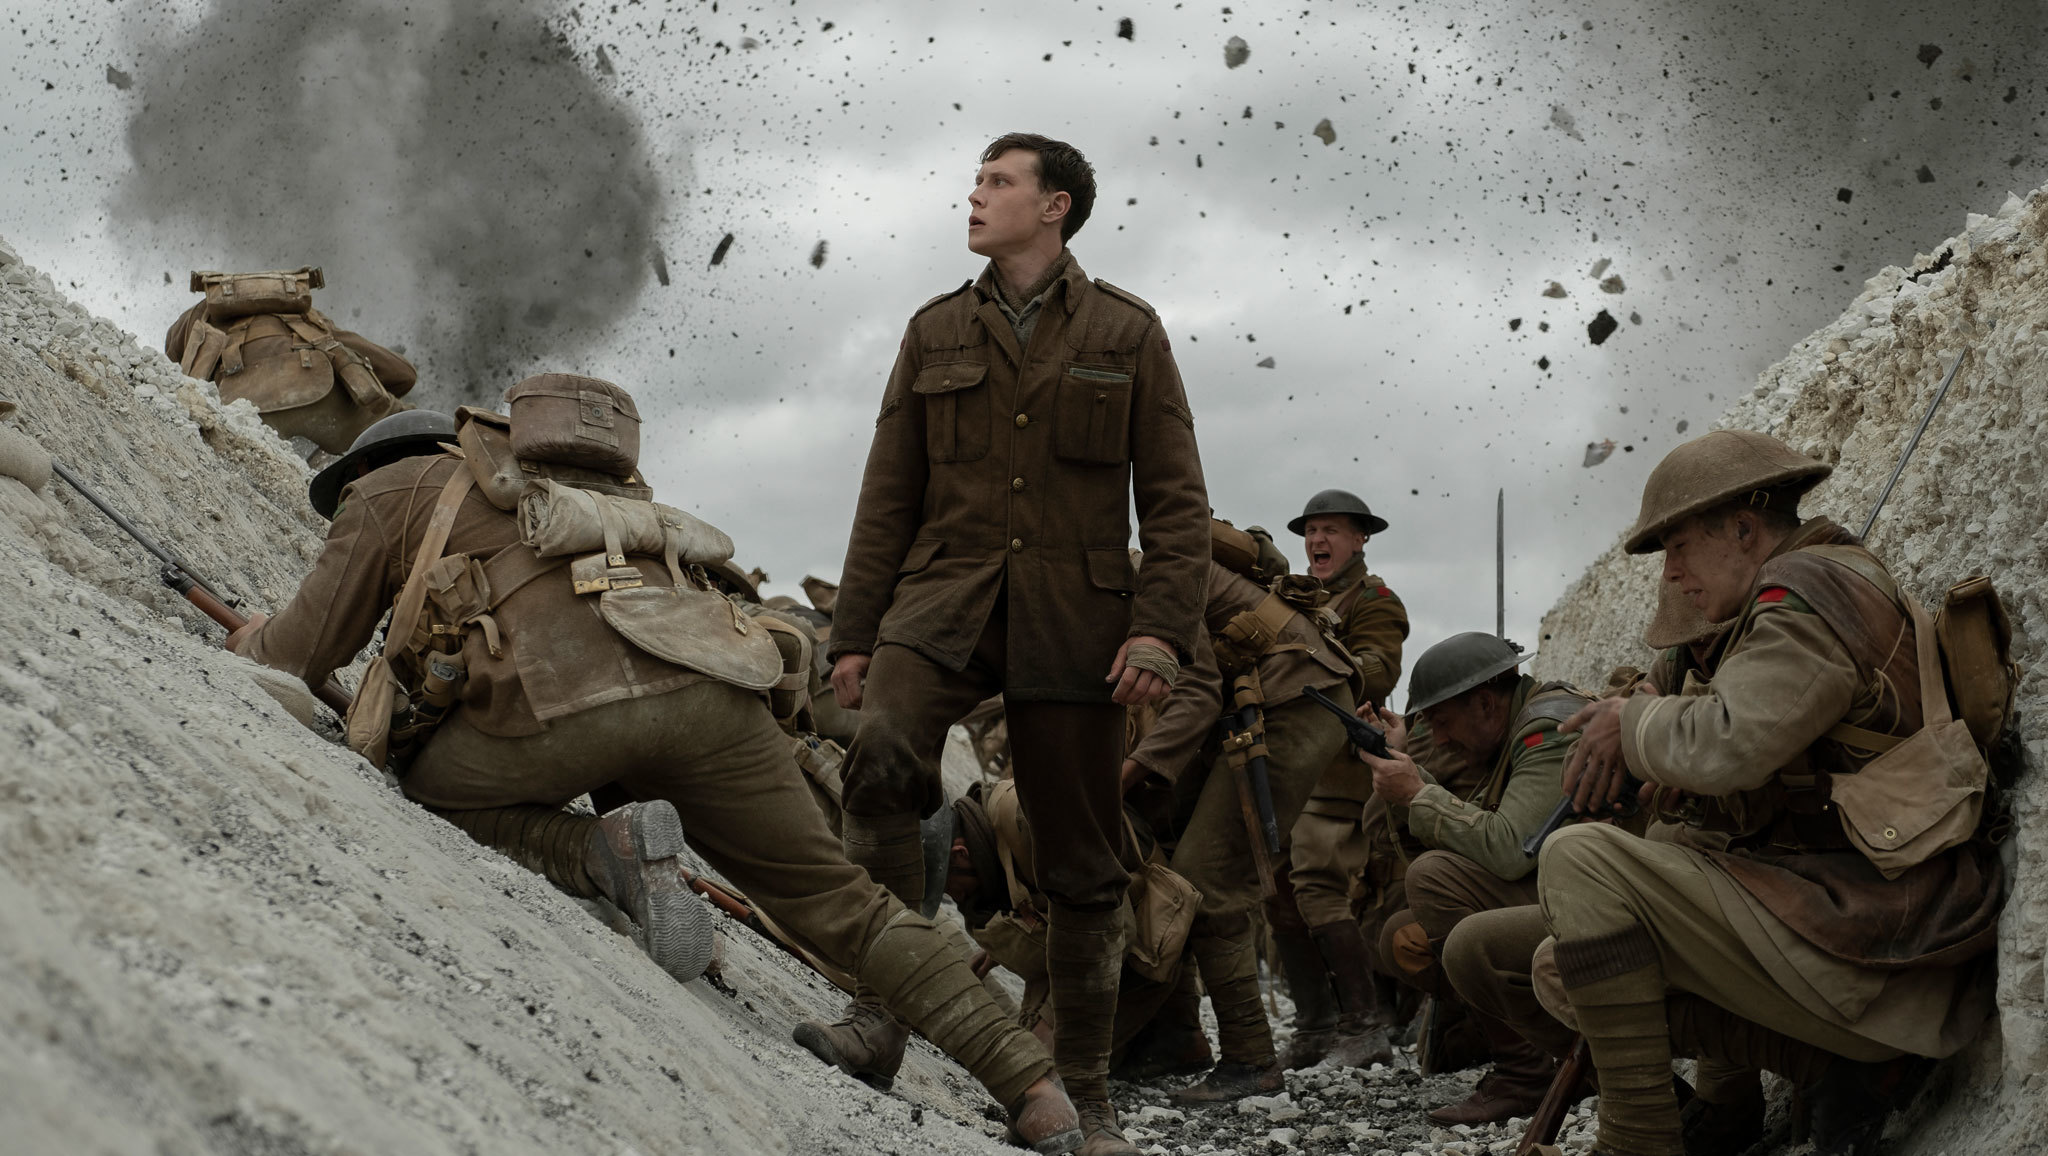 1917 review: The Great War movie, reinvented